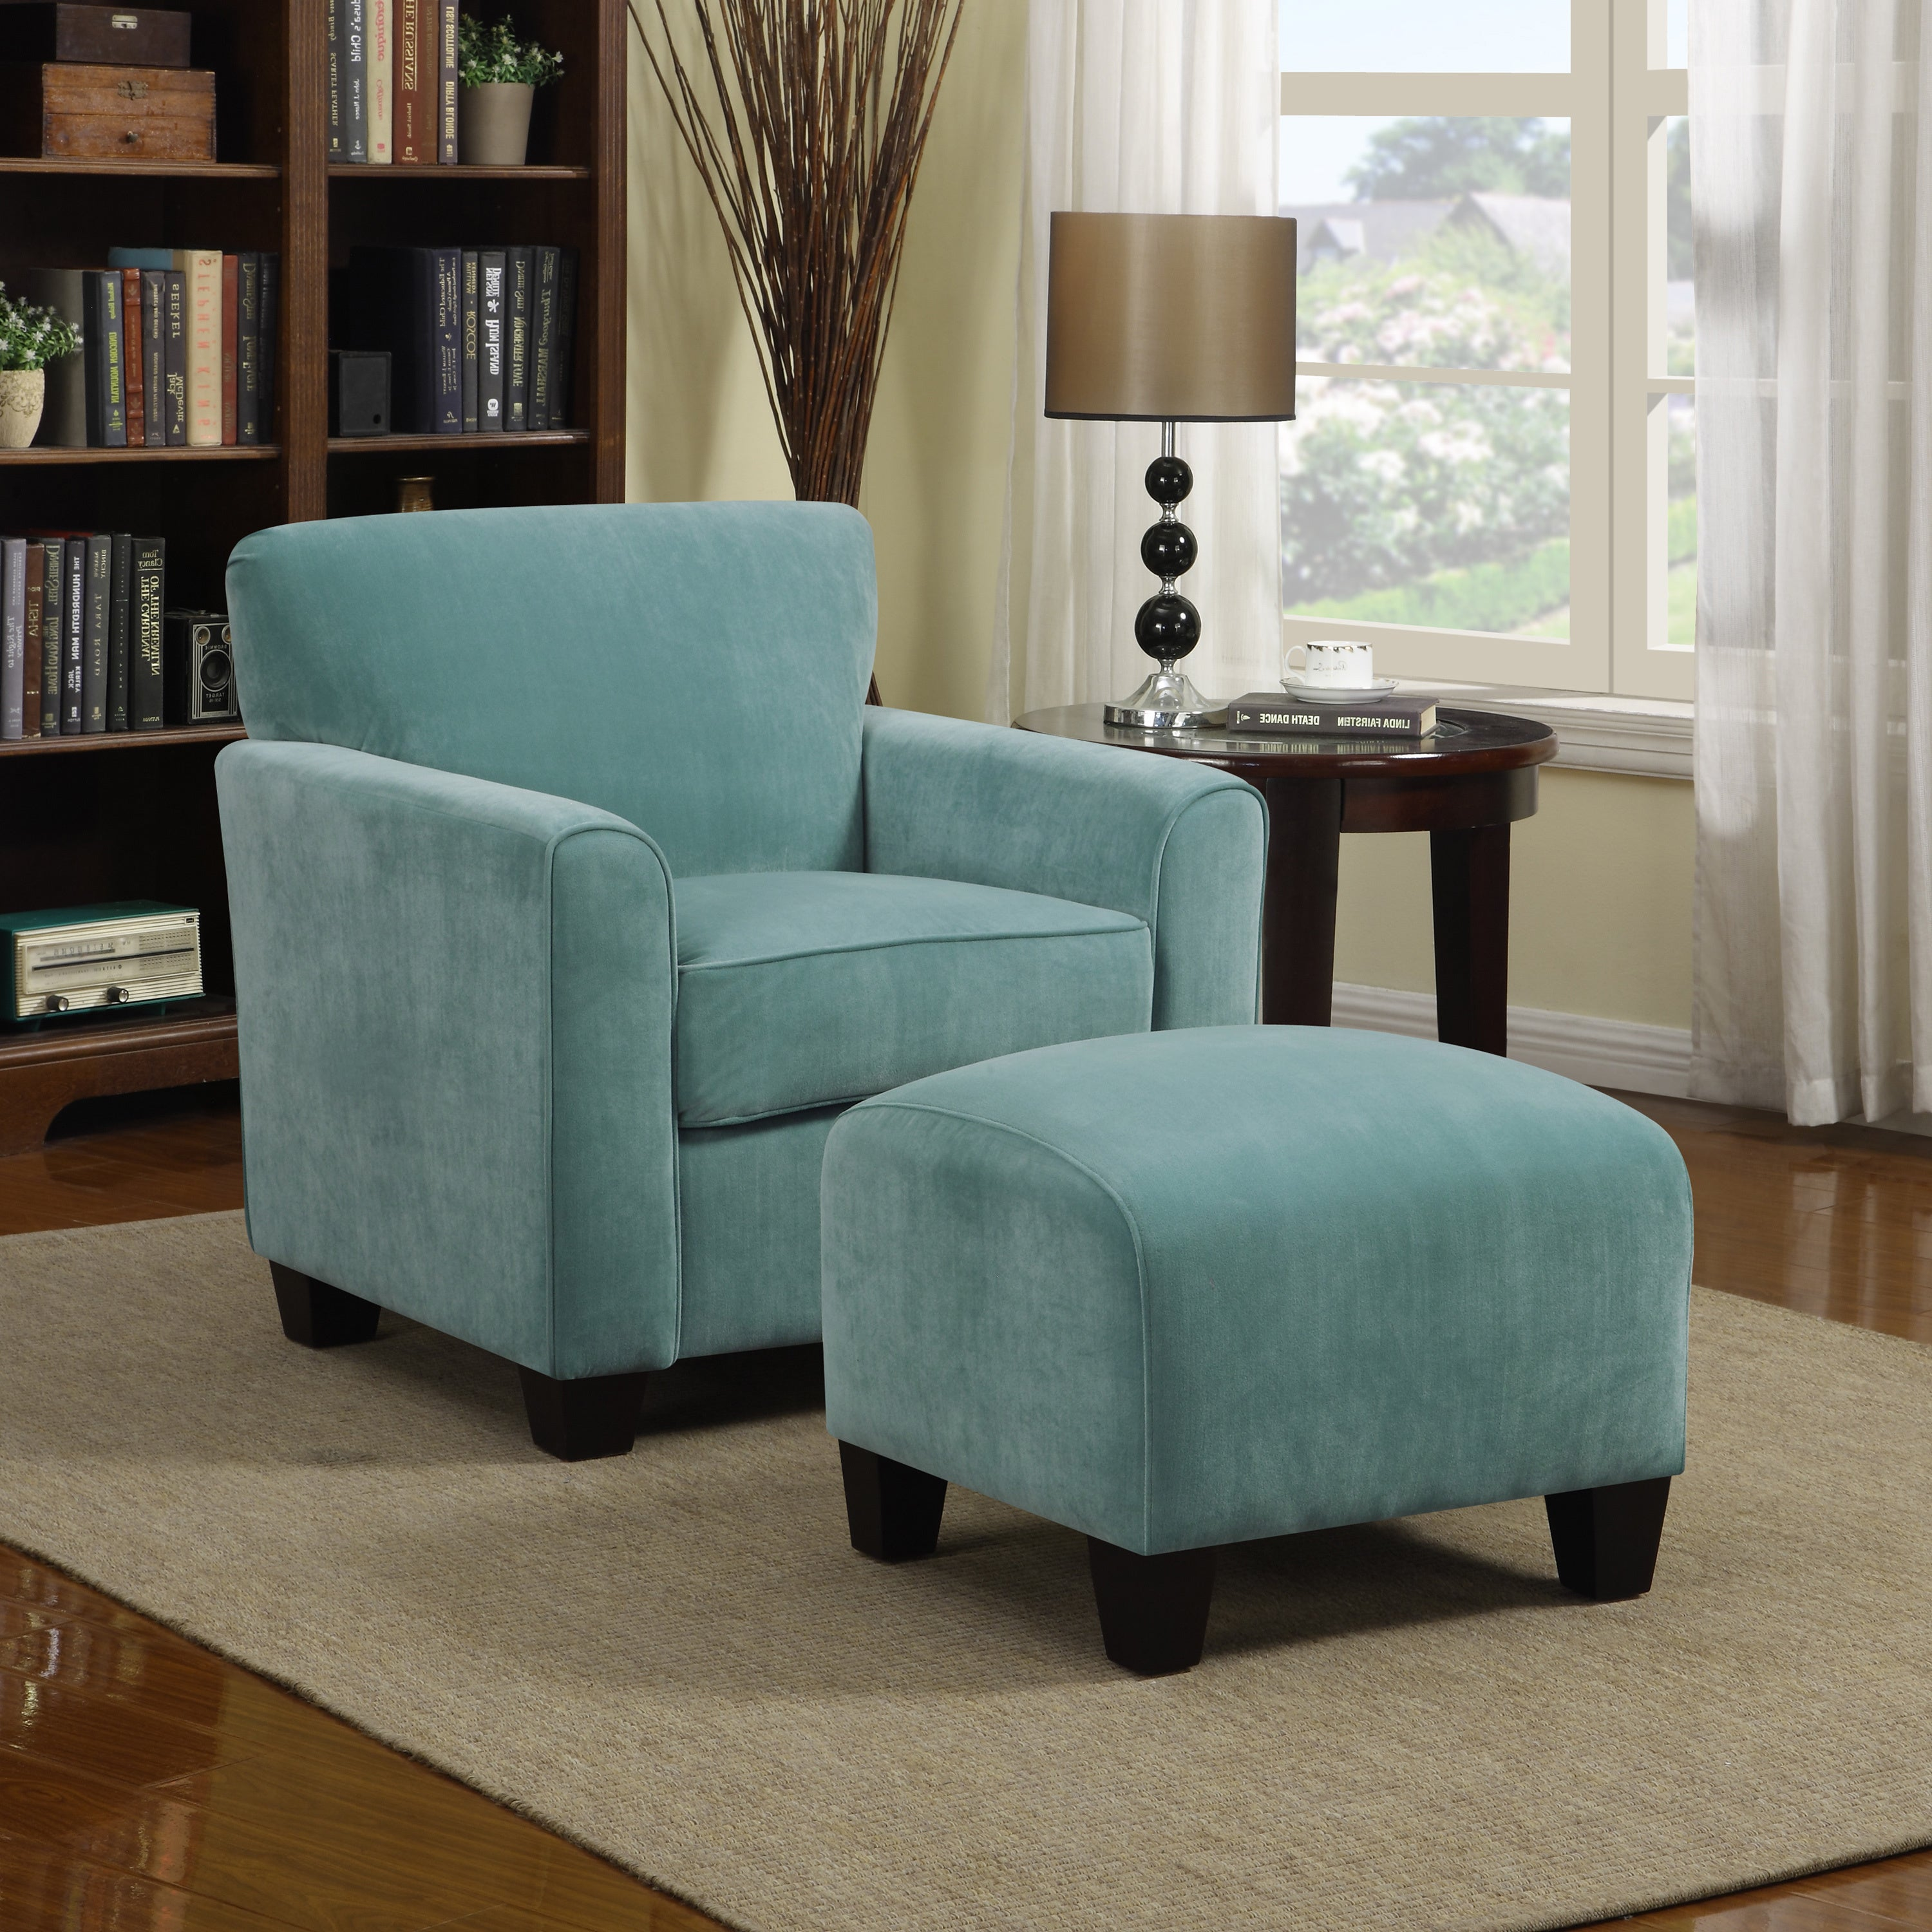 home shipping product kids chairs free overstock football and ottoman chair ottomans design garden today